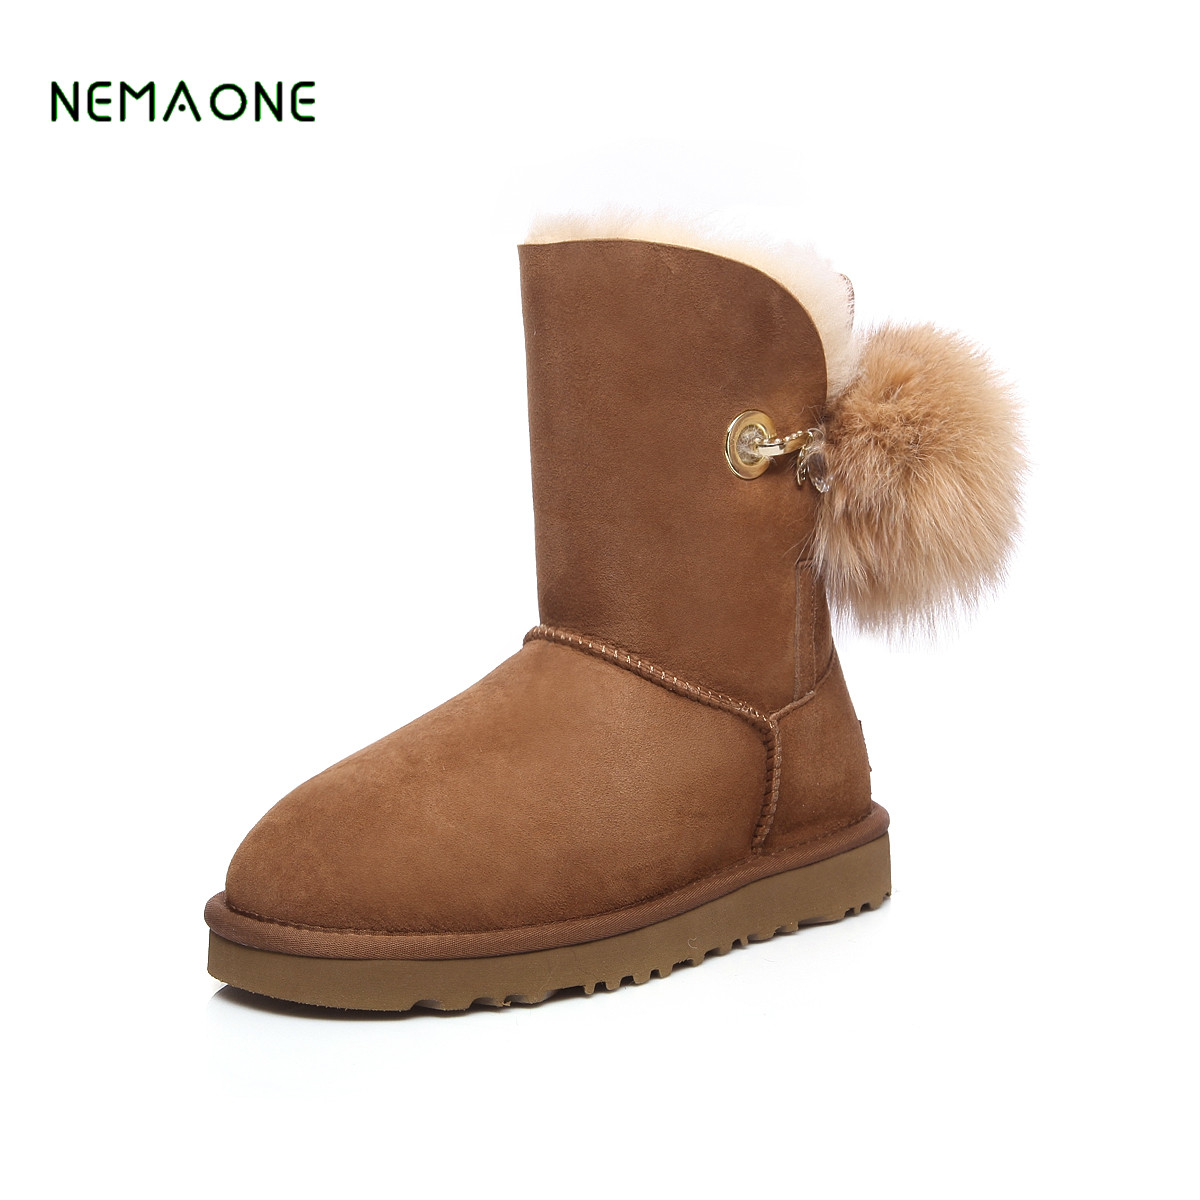 NEMAONE 2017 Genuine Leather Snow Boots Winter Shoes for Women New Arrival 100% Real Fur Classic Mujer Botas Waterproof new arrival attop a5 2 4g 4ch 6 axis gyro rtf remote control quadcopter 180 360 degree flips aircraft drone toy 2016